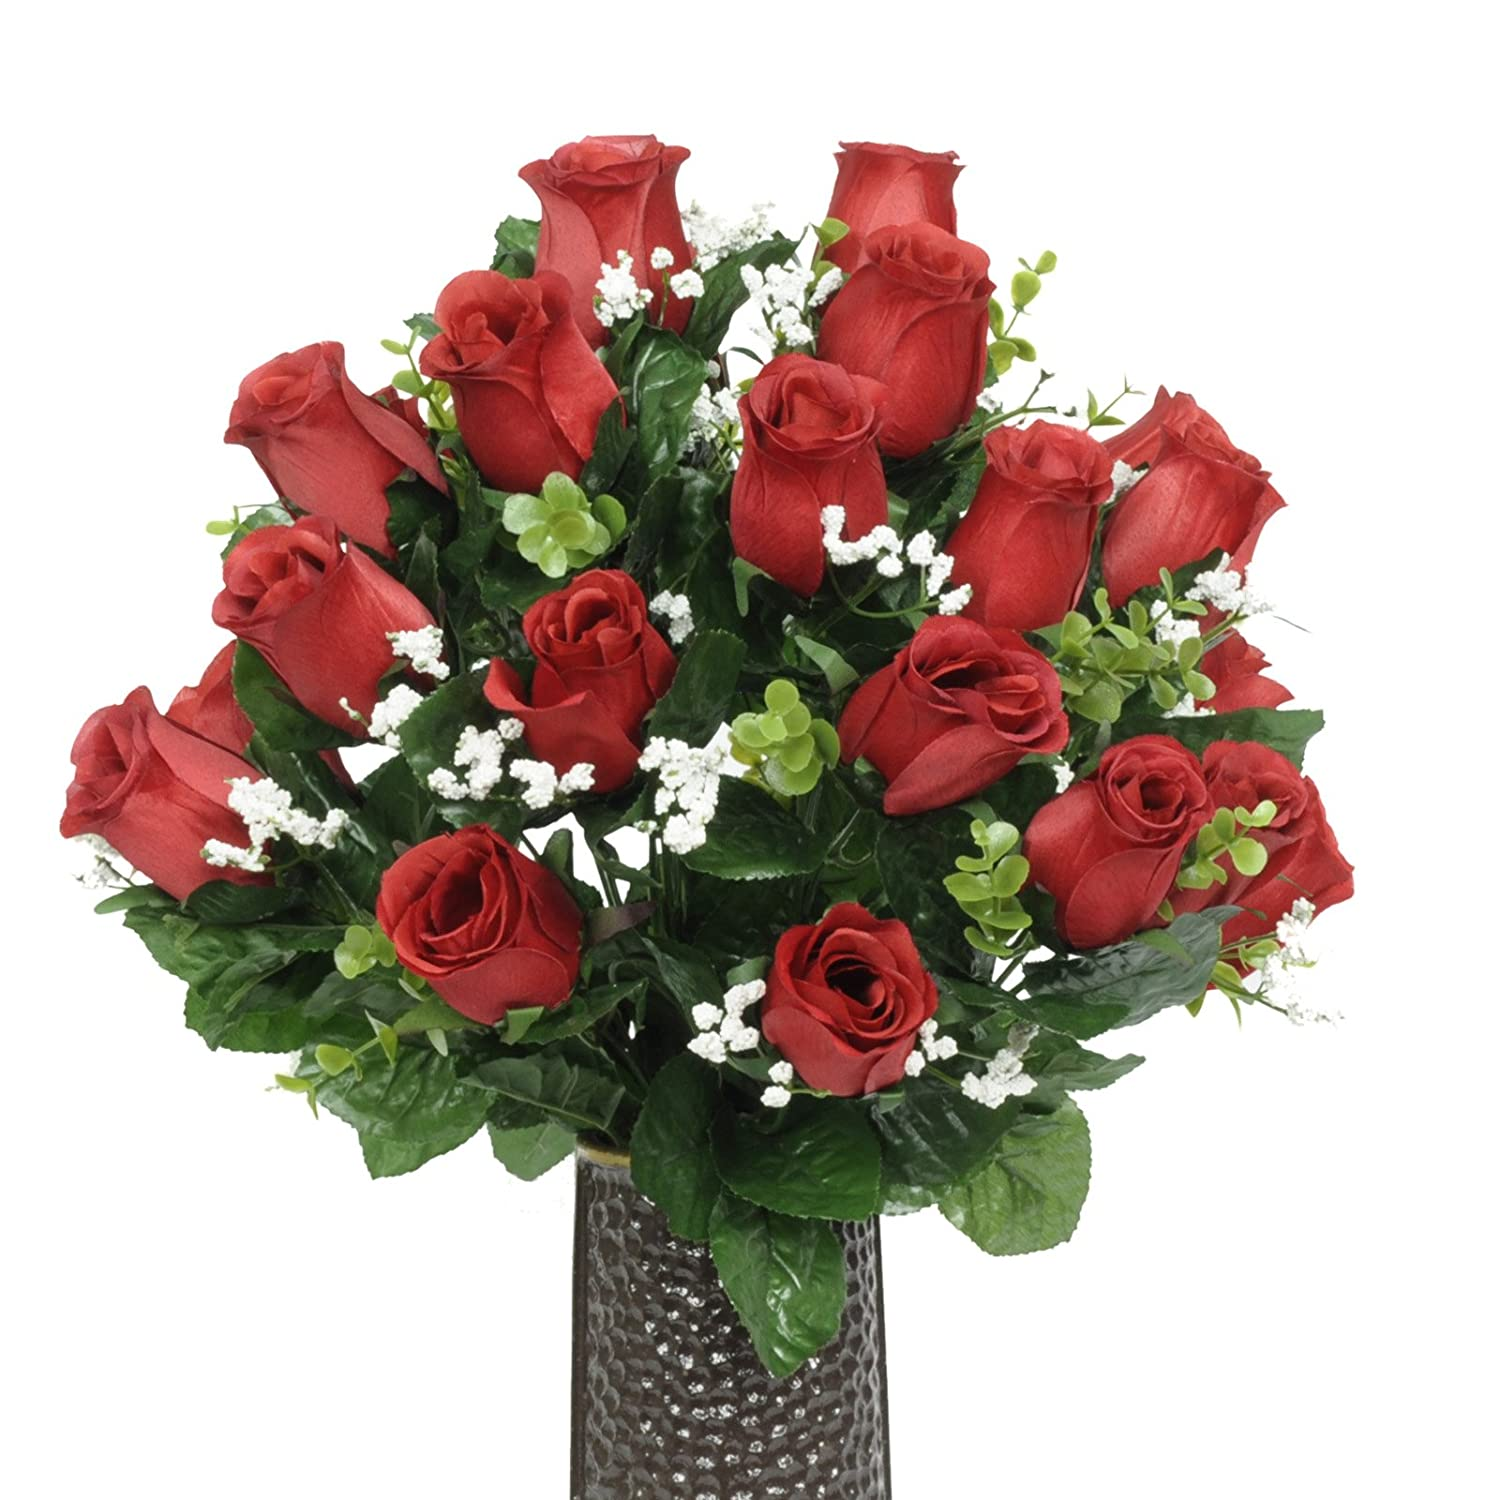 Amazon red rose silk flower bouquet with stay in the vase amazon red rose silk flower bouquet with stay in the vase design flower holdersm1584 home kitchen izmirmasajfo